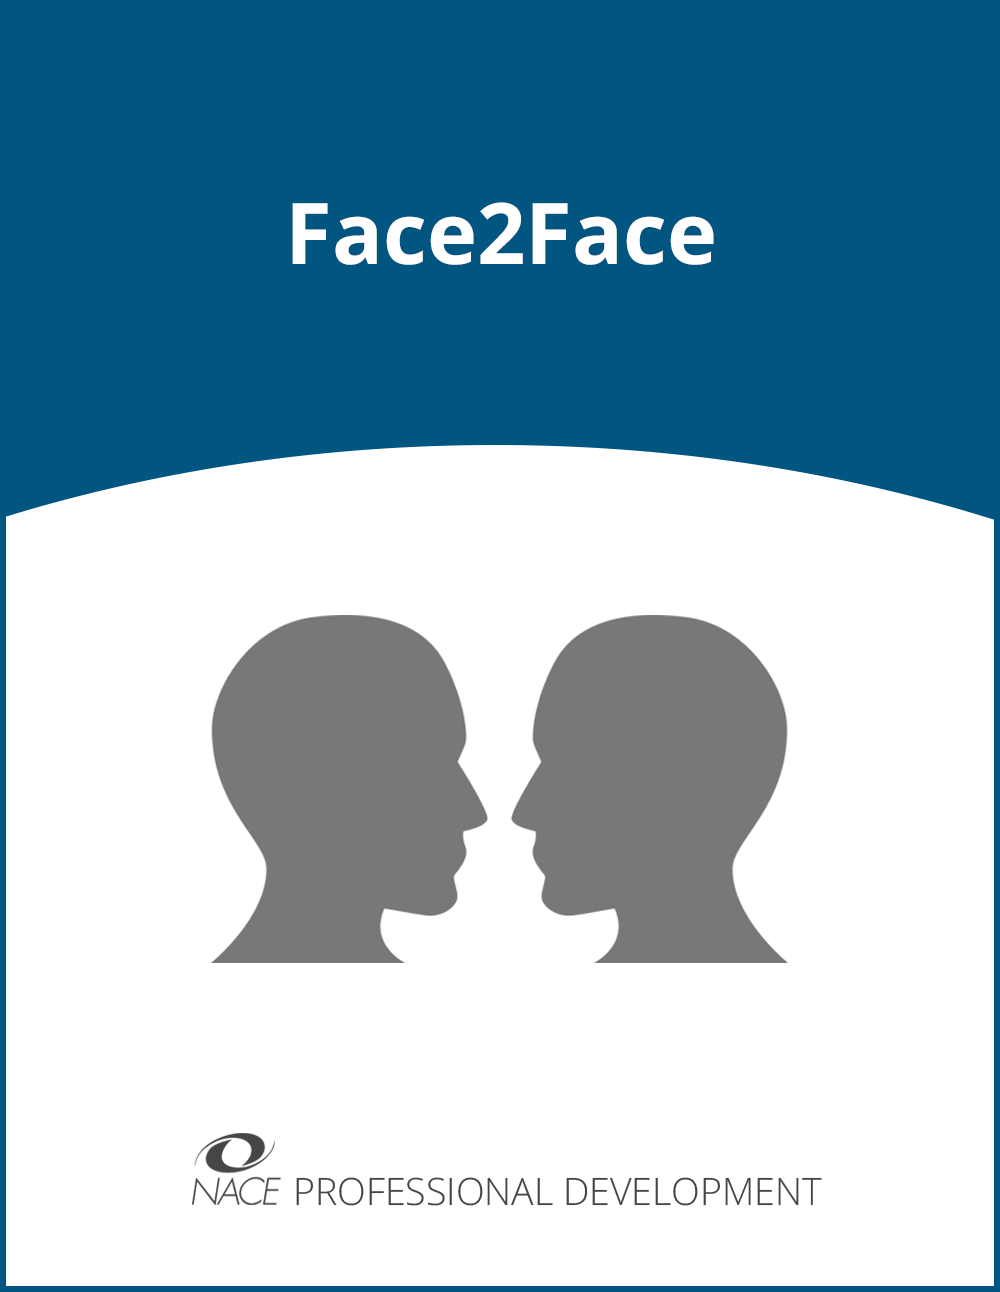 Face2Face: Boston, MA